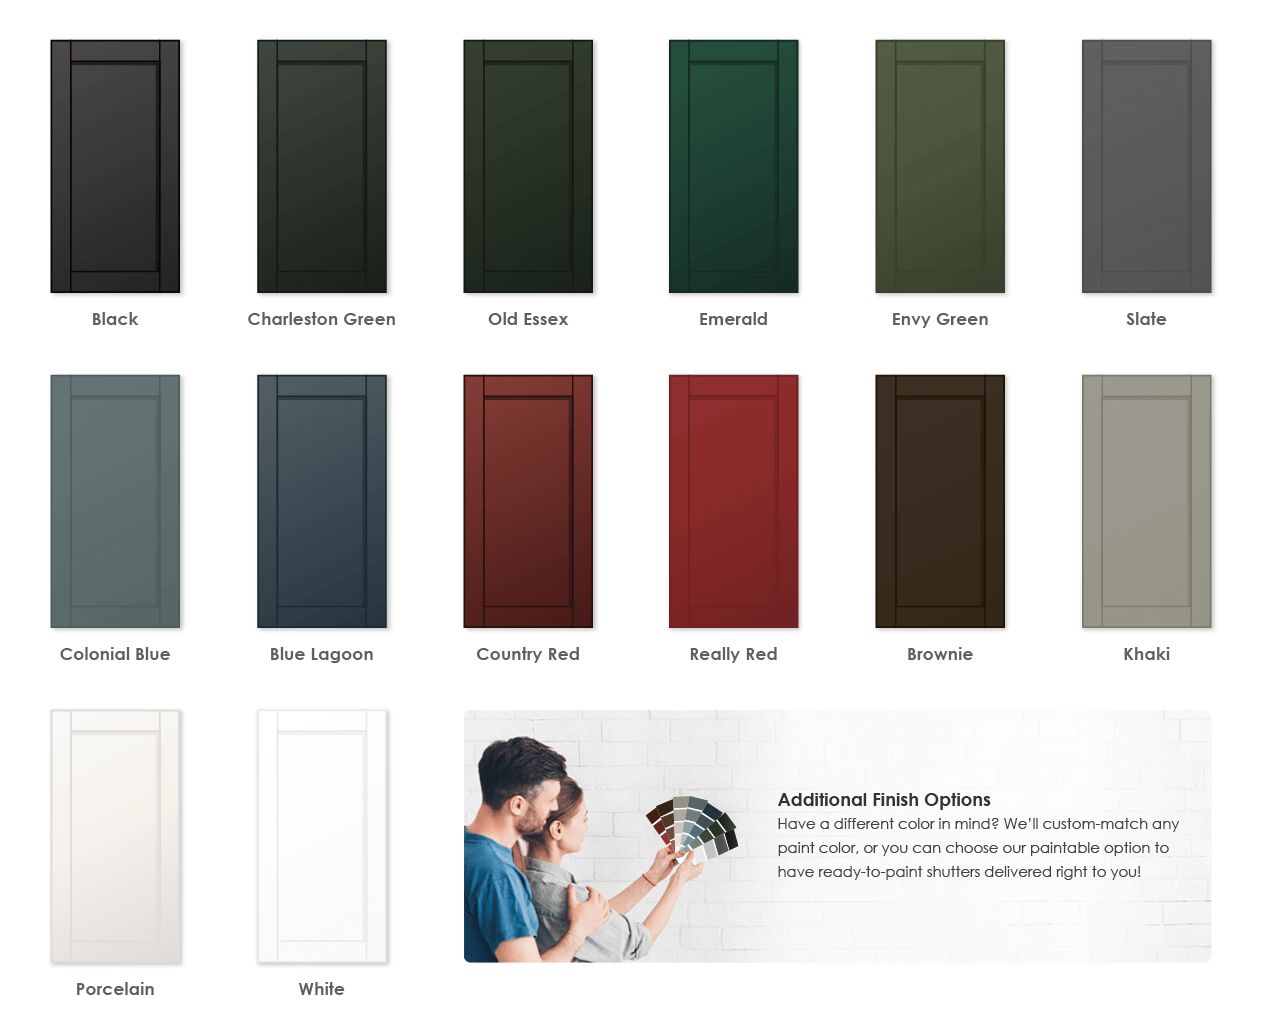 Adorned Openings offers a variety of wonderful paint color options for flat panel shutters